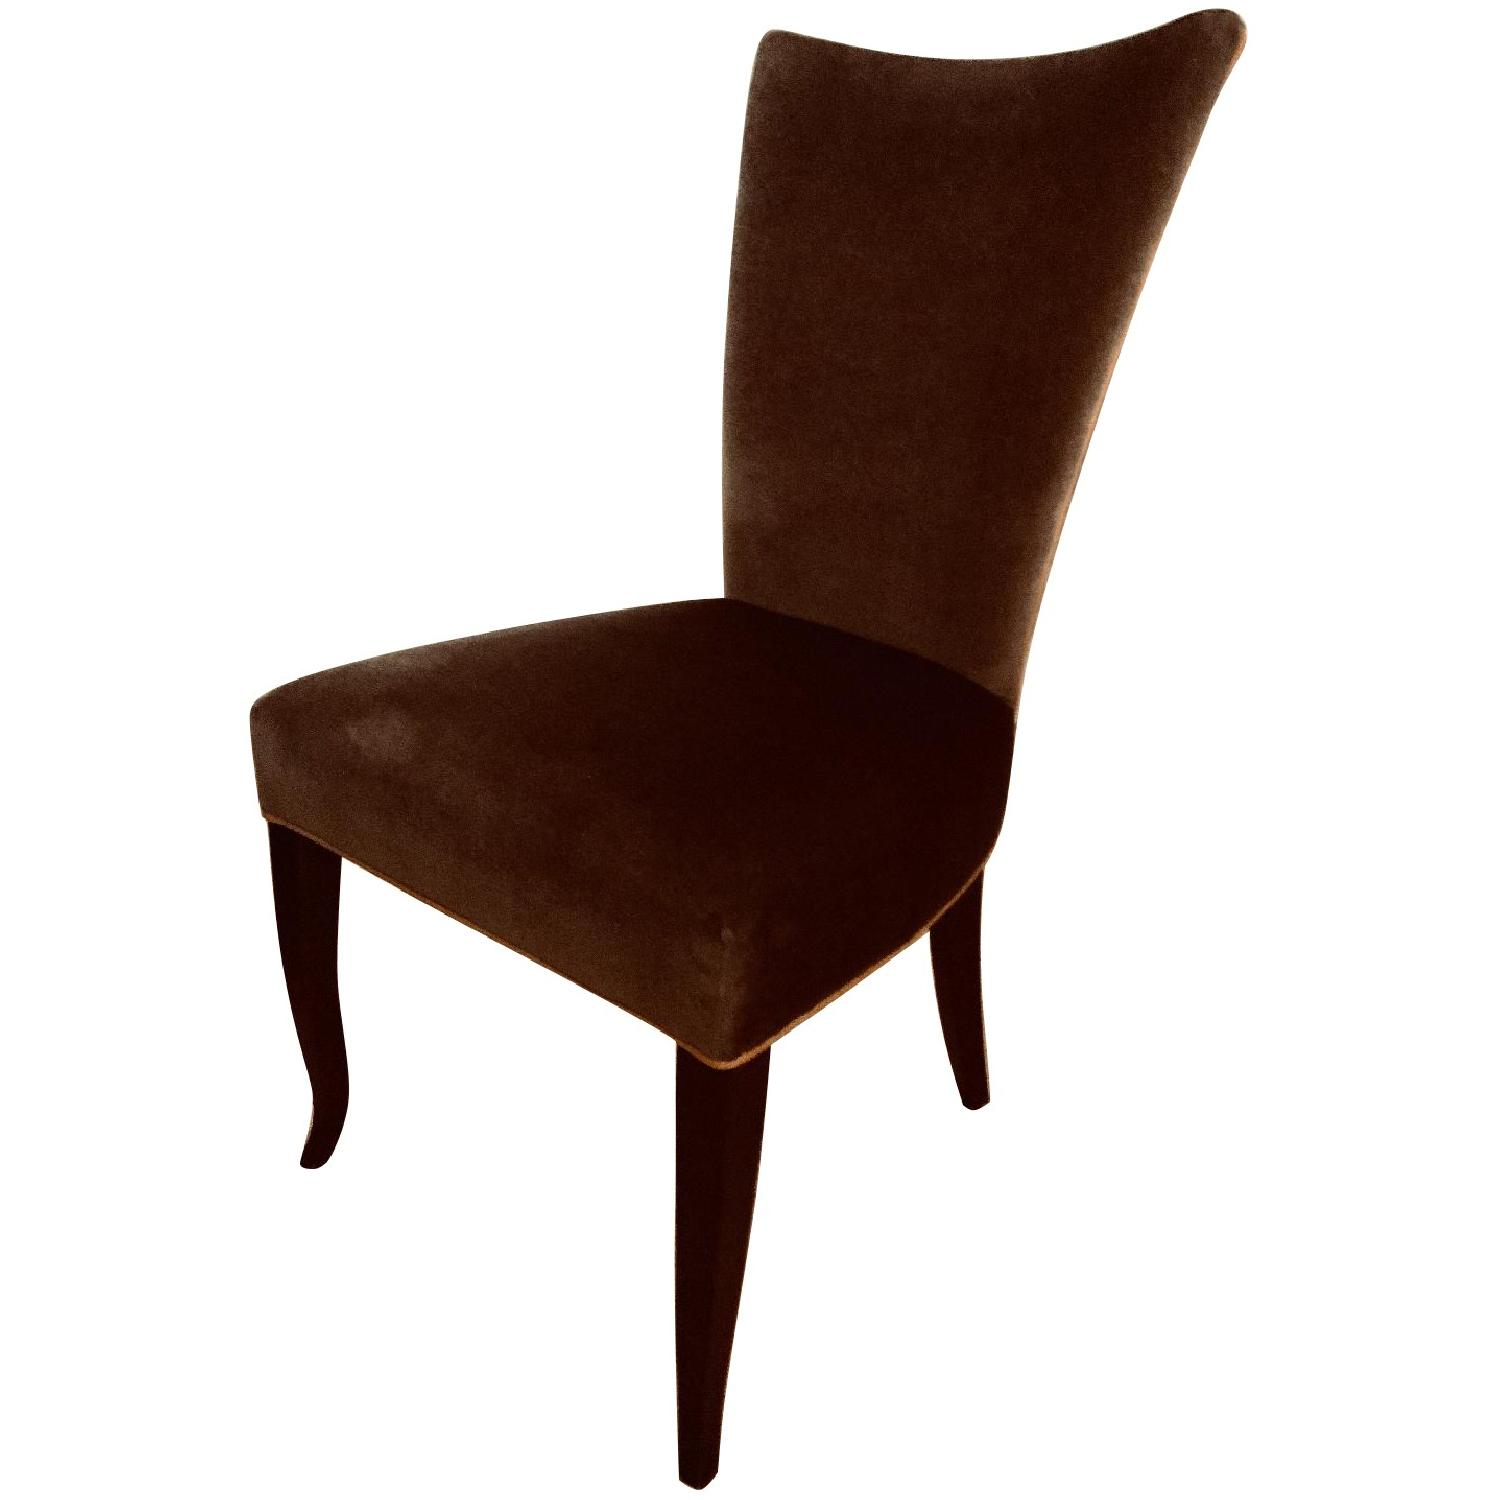 Modern Mohair Chairs - image-4